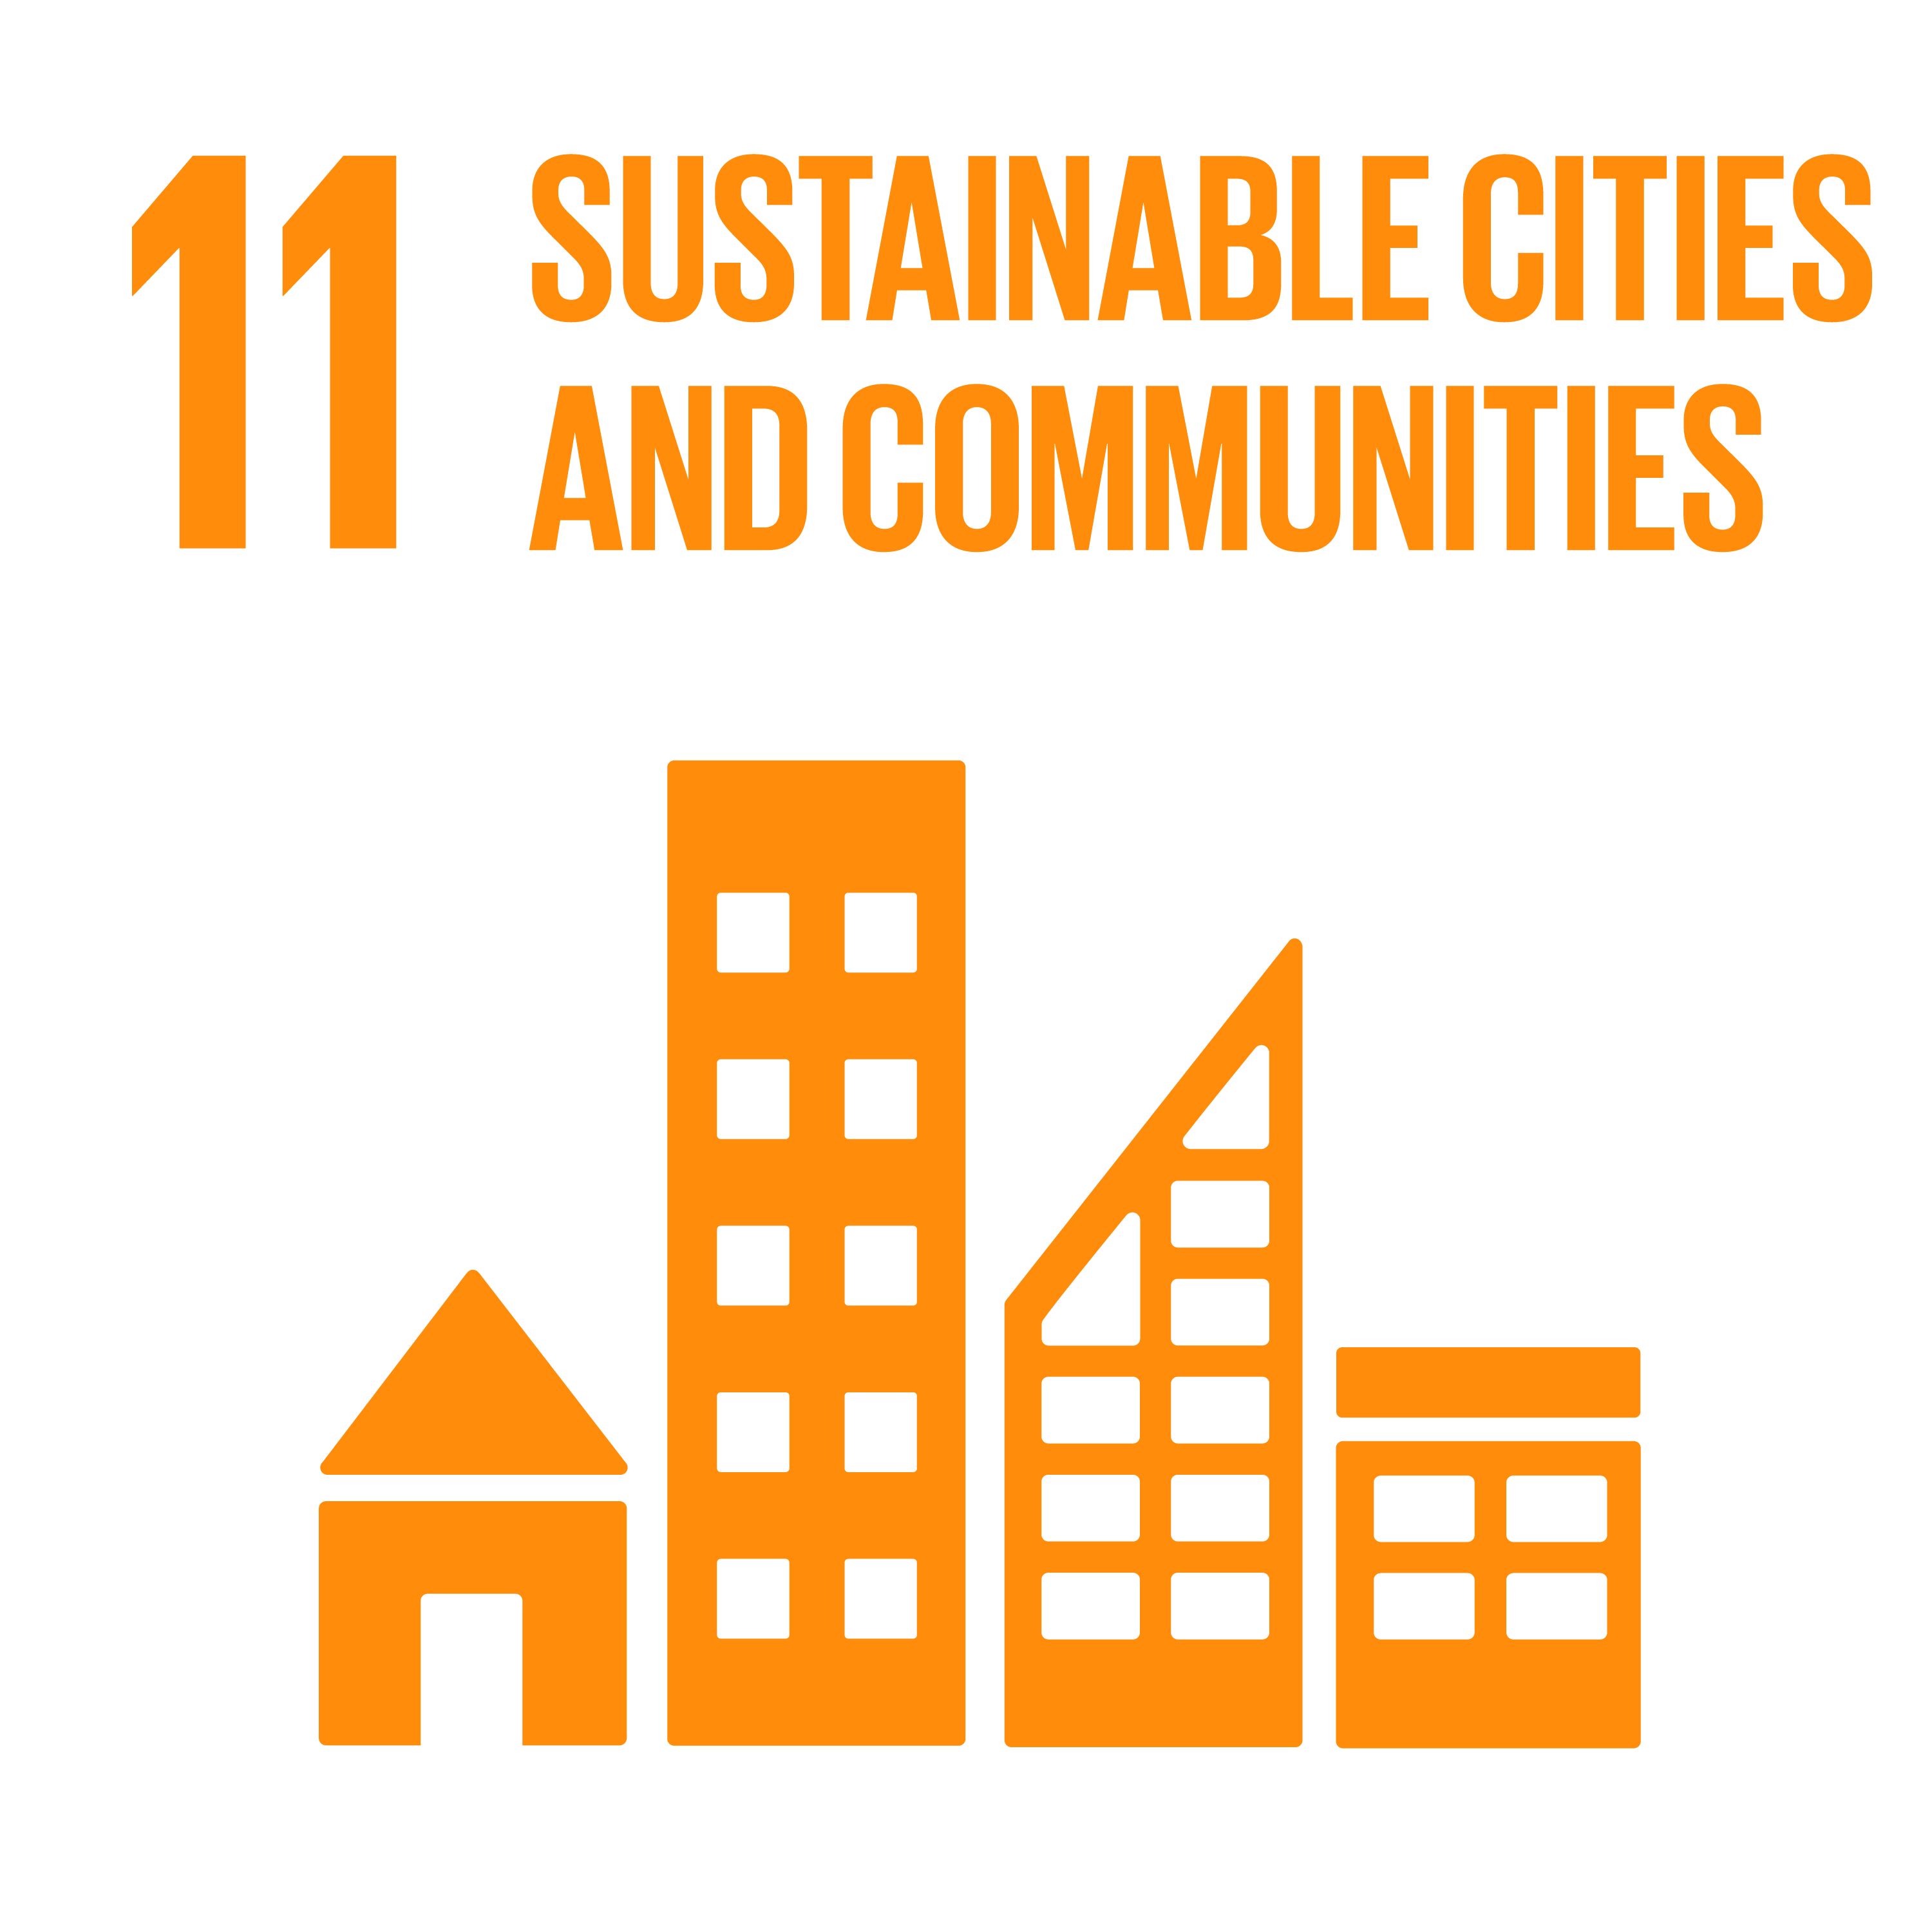 Sustainable development goals: Sustainable cities and communities